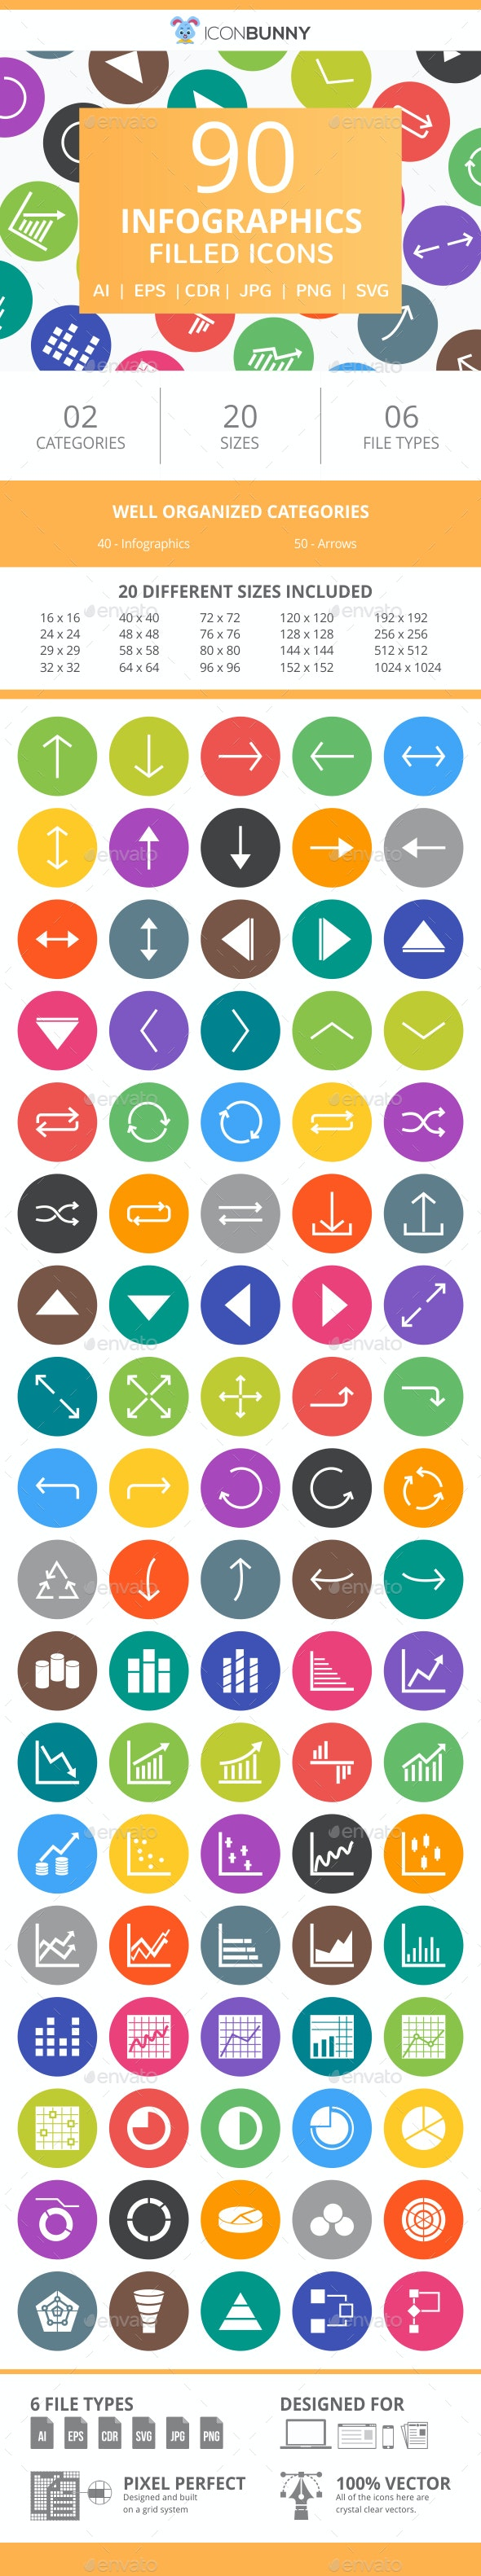 90 Infographics Filled Round Icons - Icons